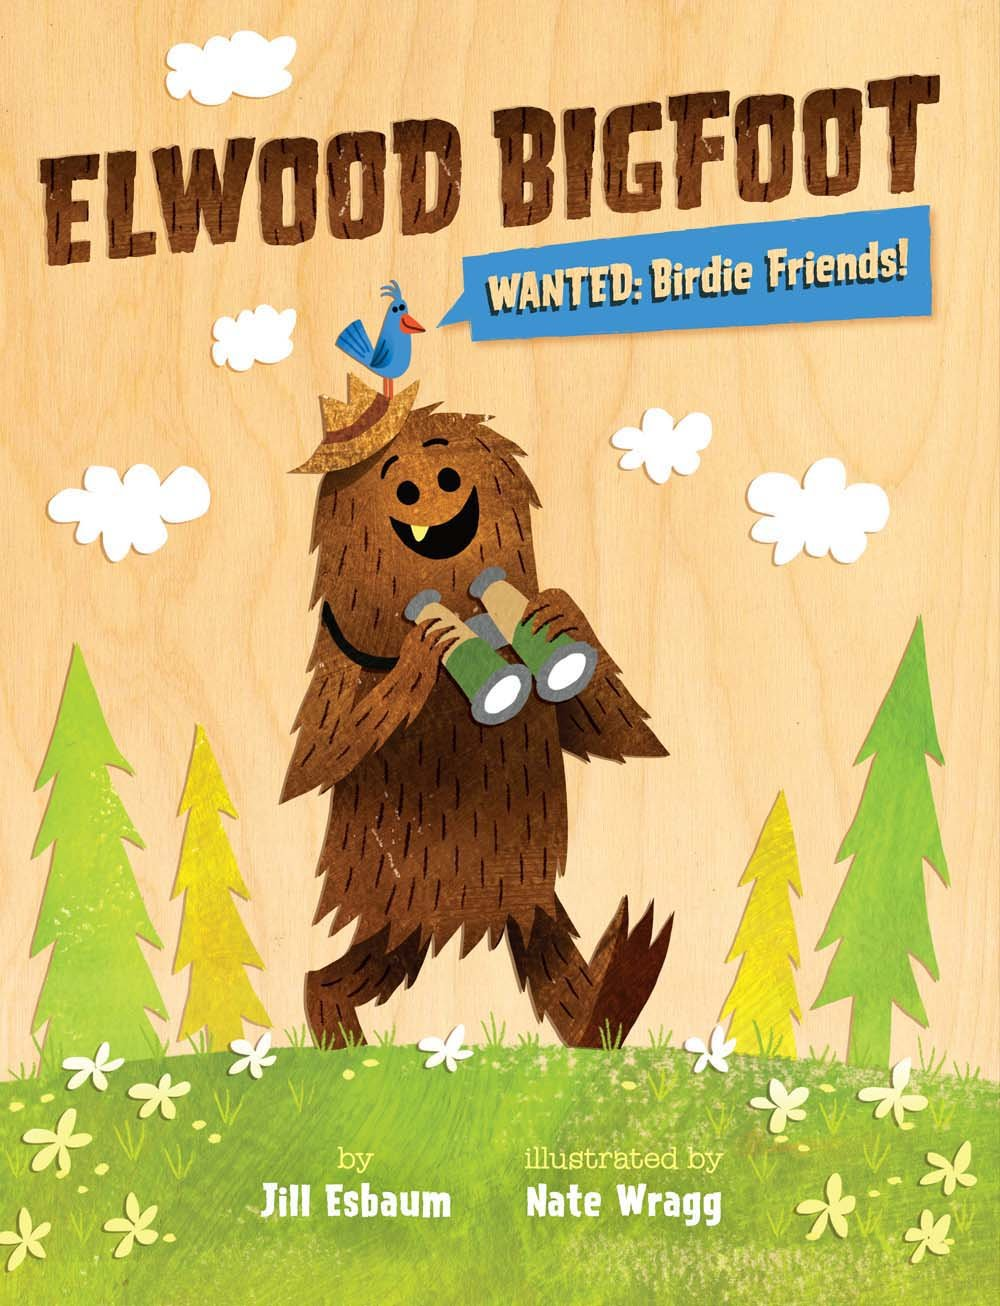 Picture Books that celebrate being yourself - Elwood Bigfoot.jpg